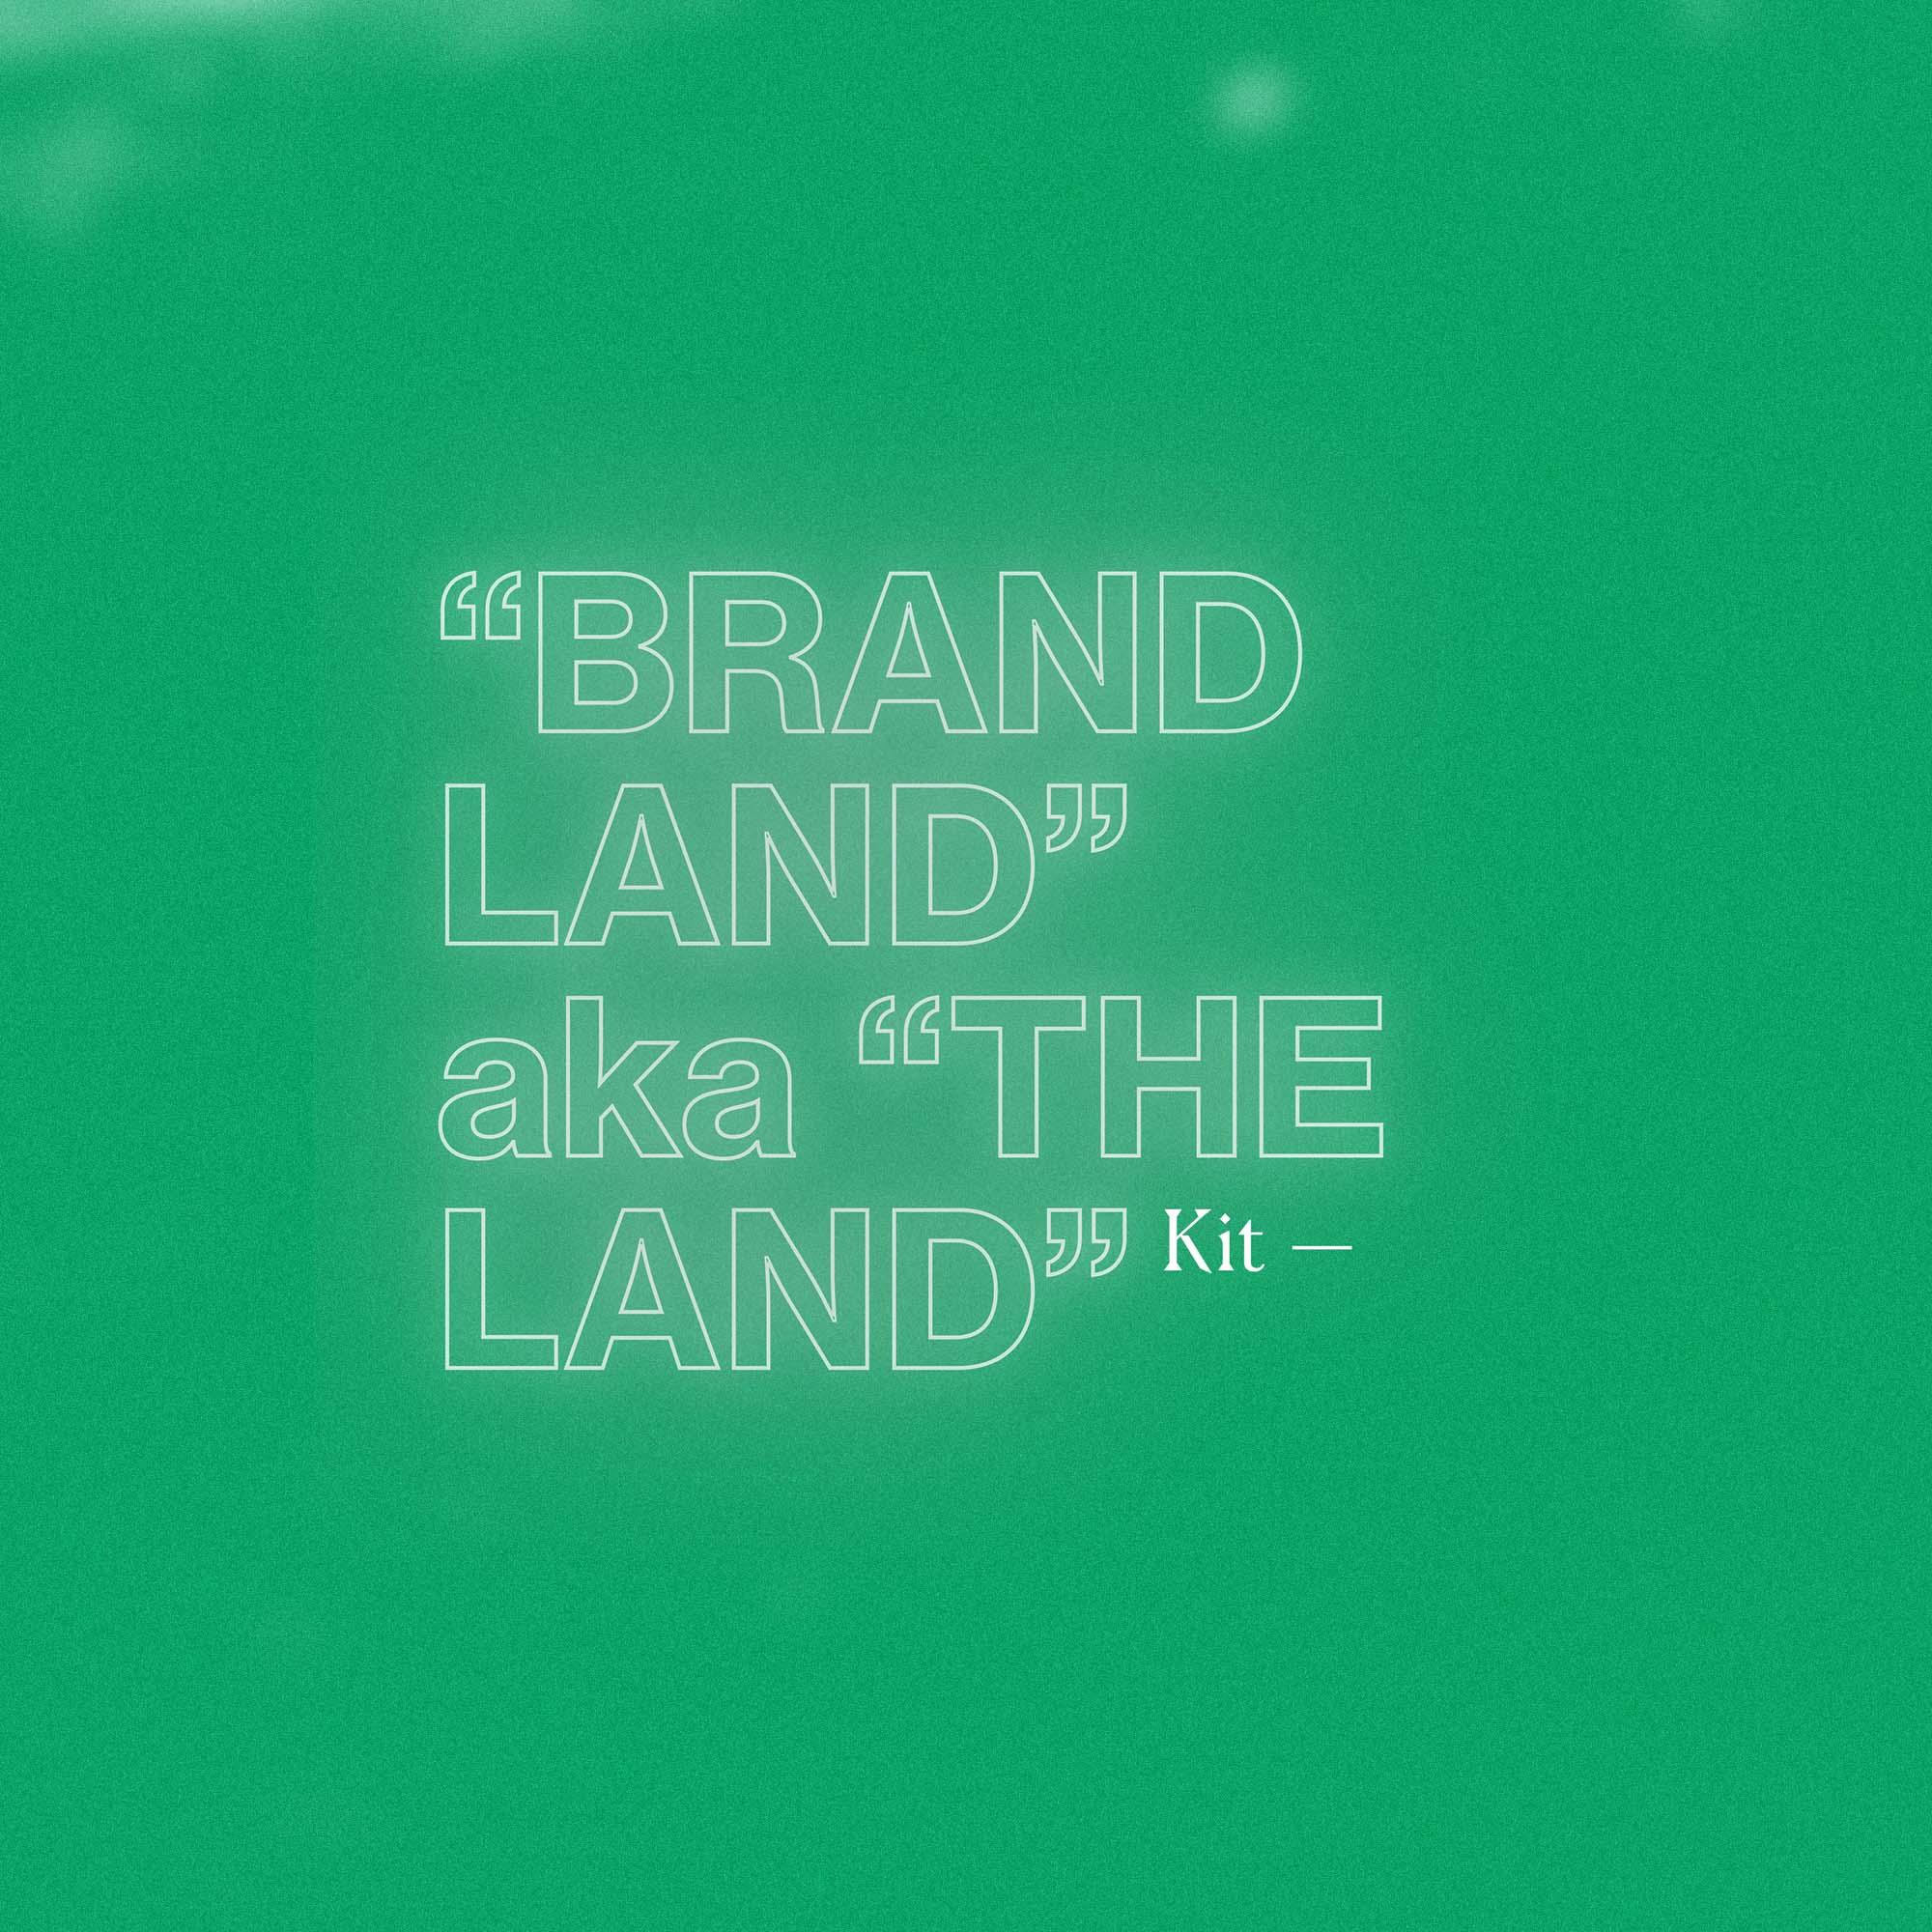 Brandland kit lock-up.